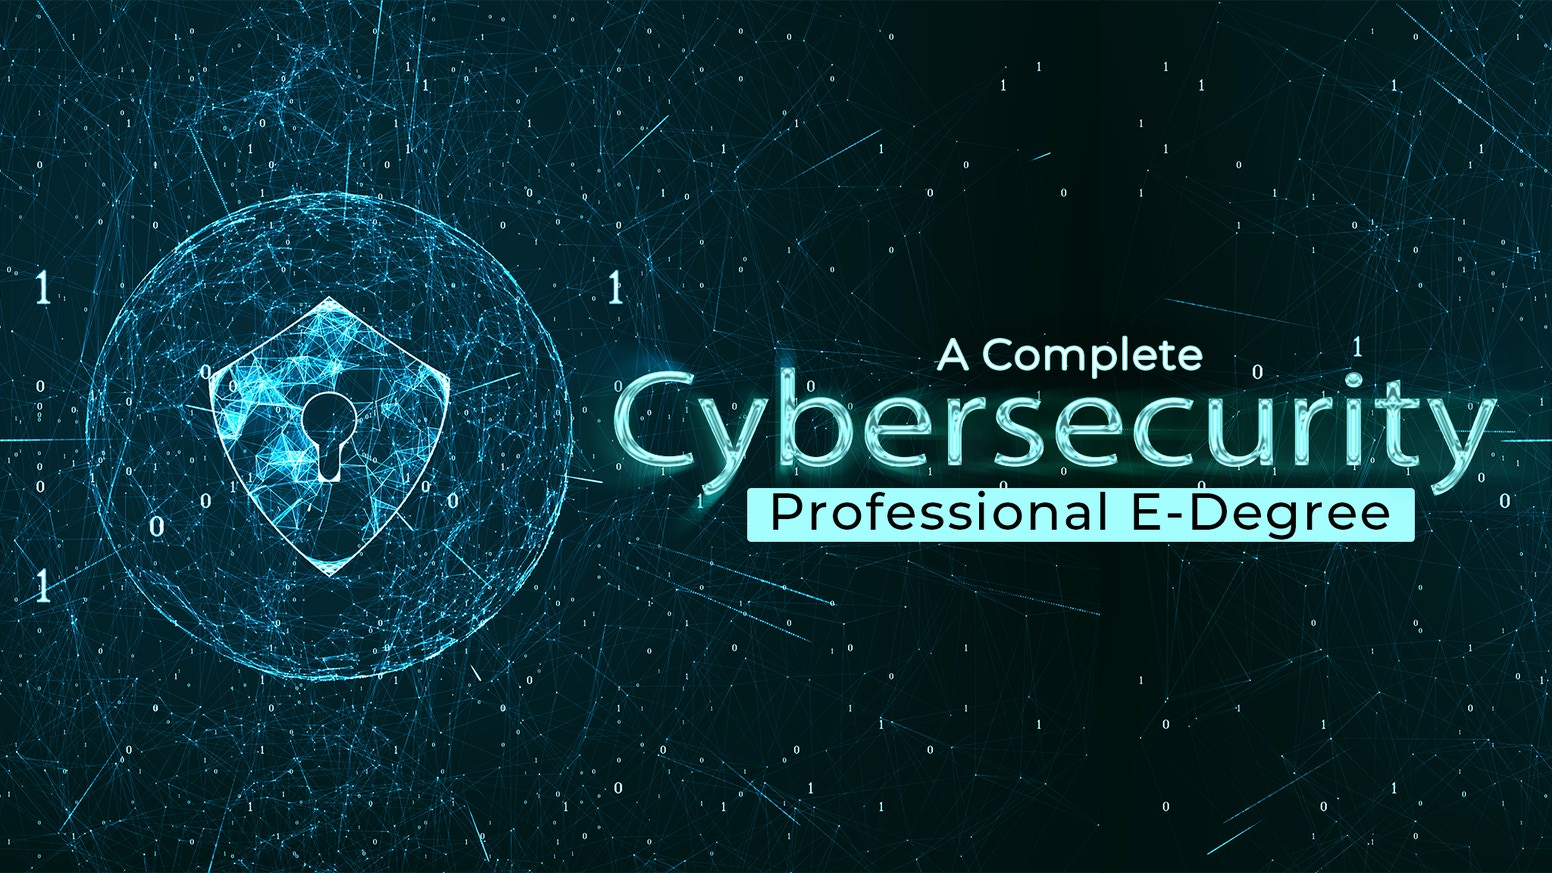 Master the concepts of White Hat Hacking, Penetration Testing, Cloud & Network Security and Become a Professional Cybersecurity Expert